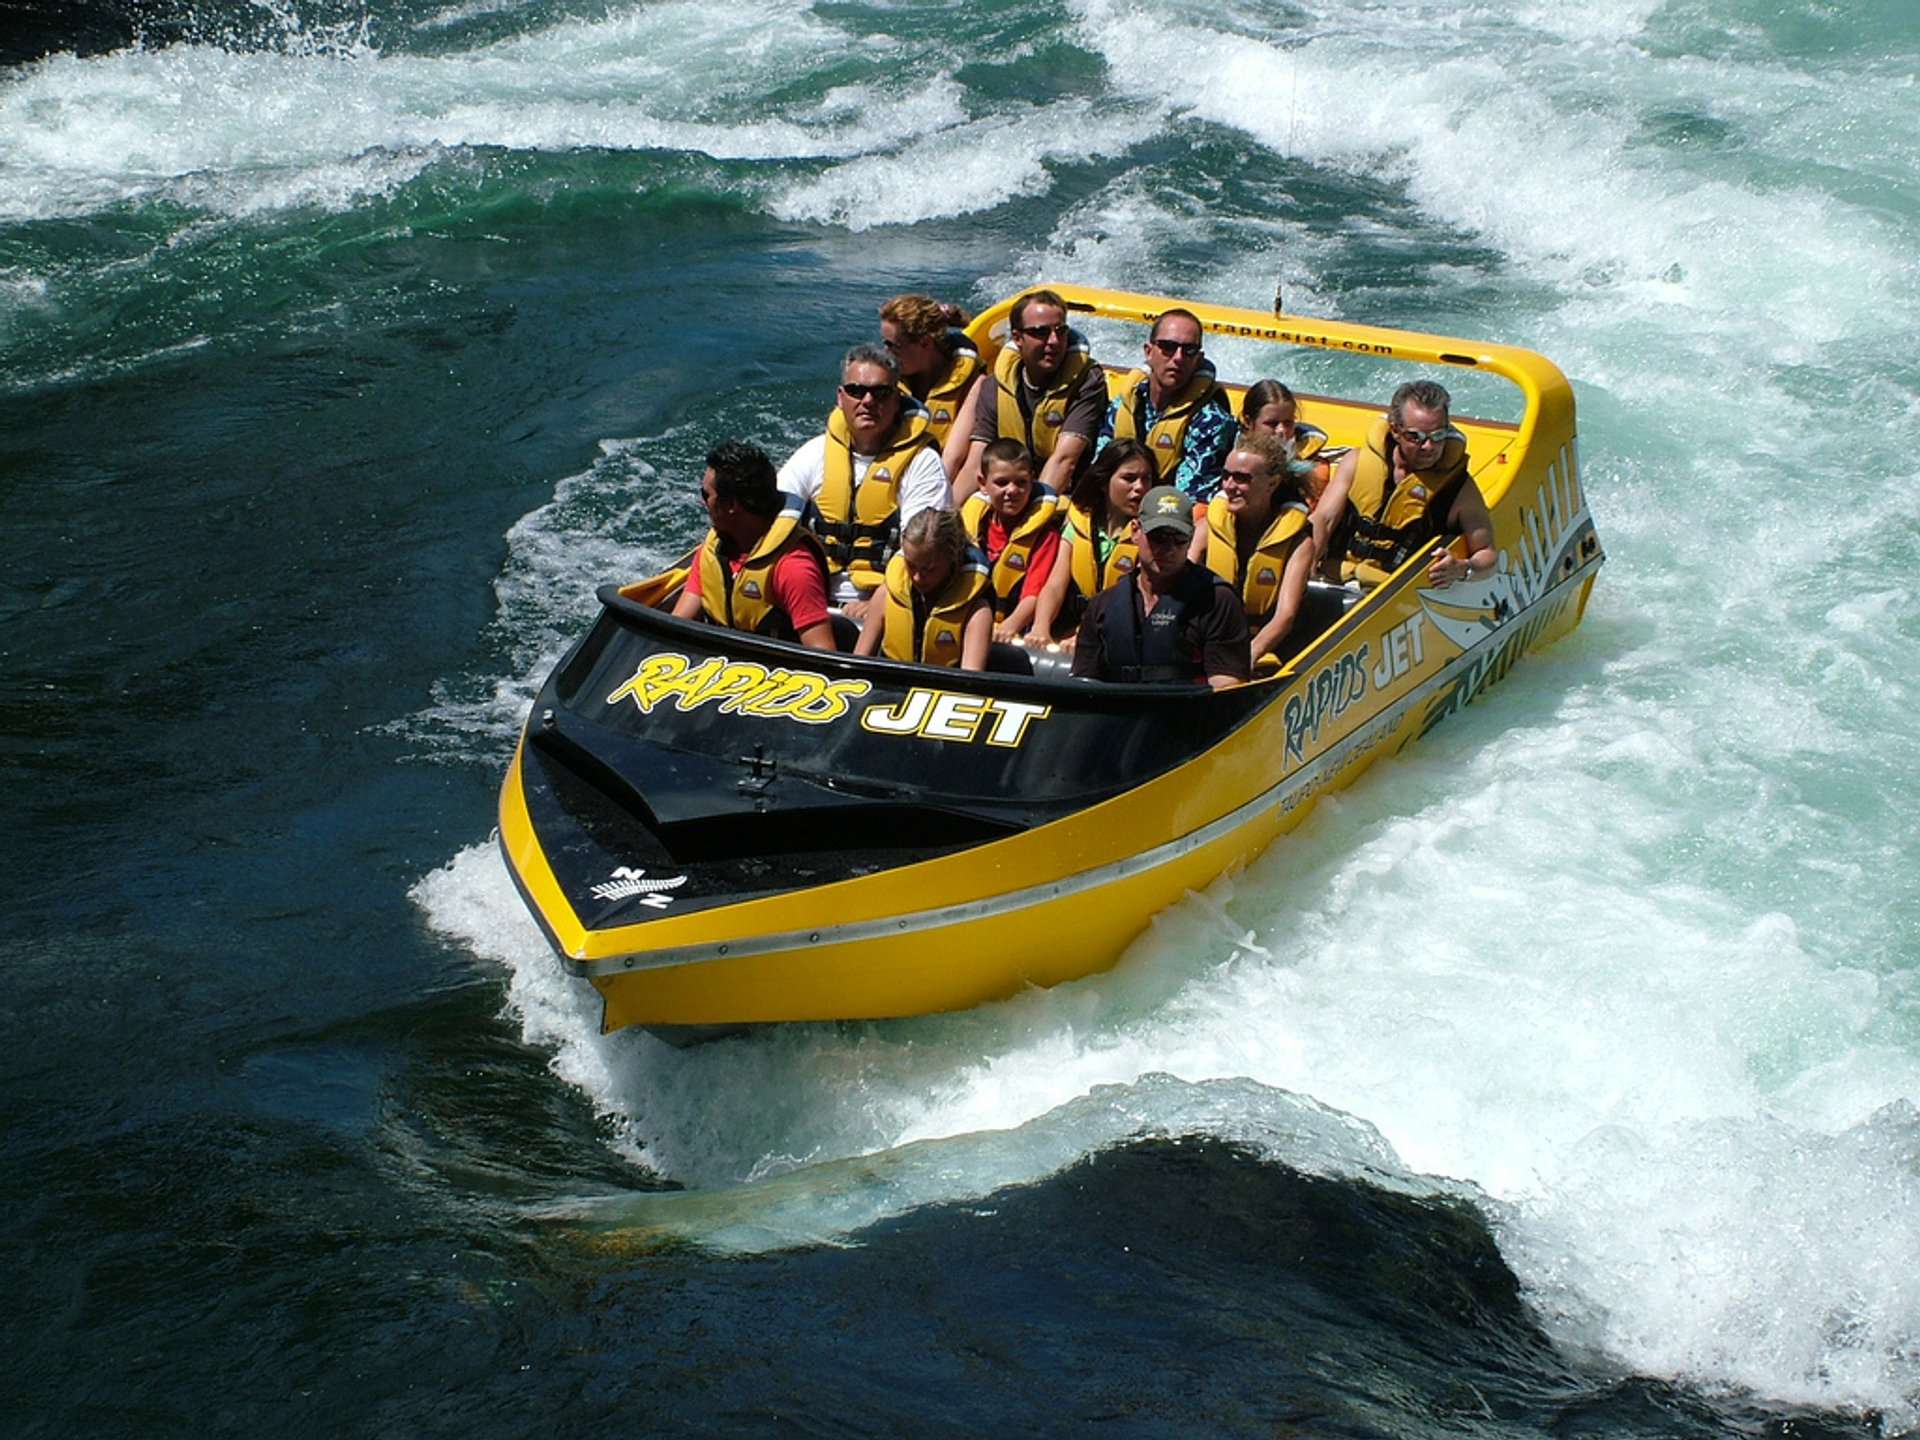 Jet Boating in New Zealand - Best Time